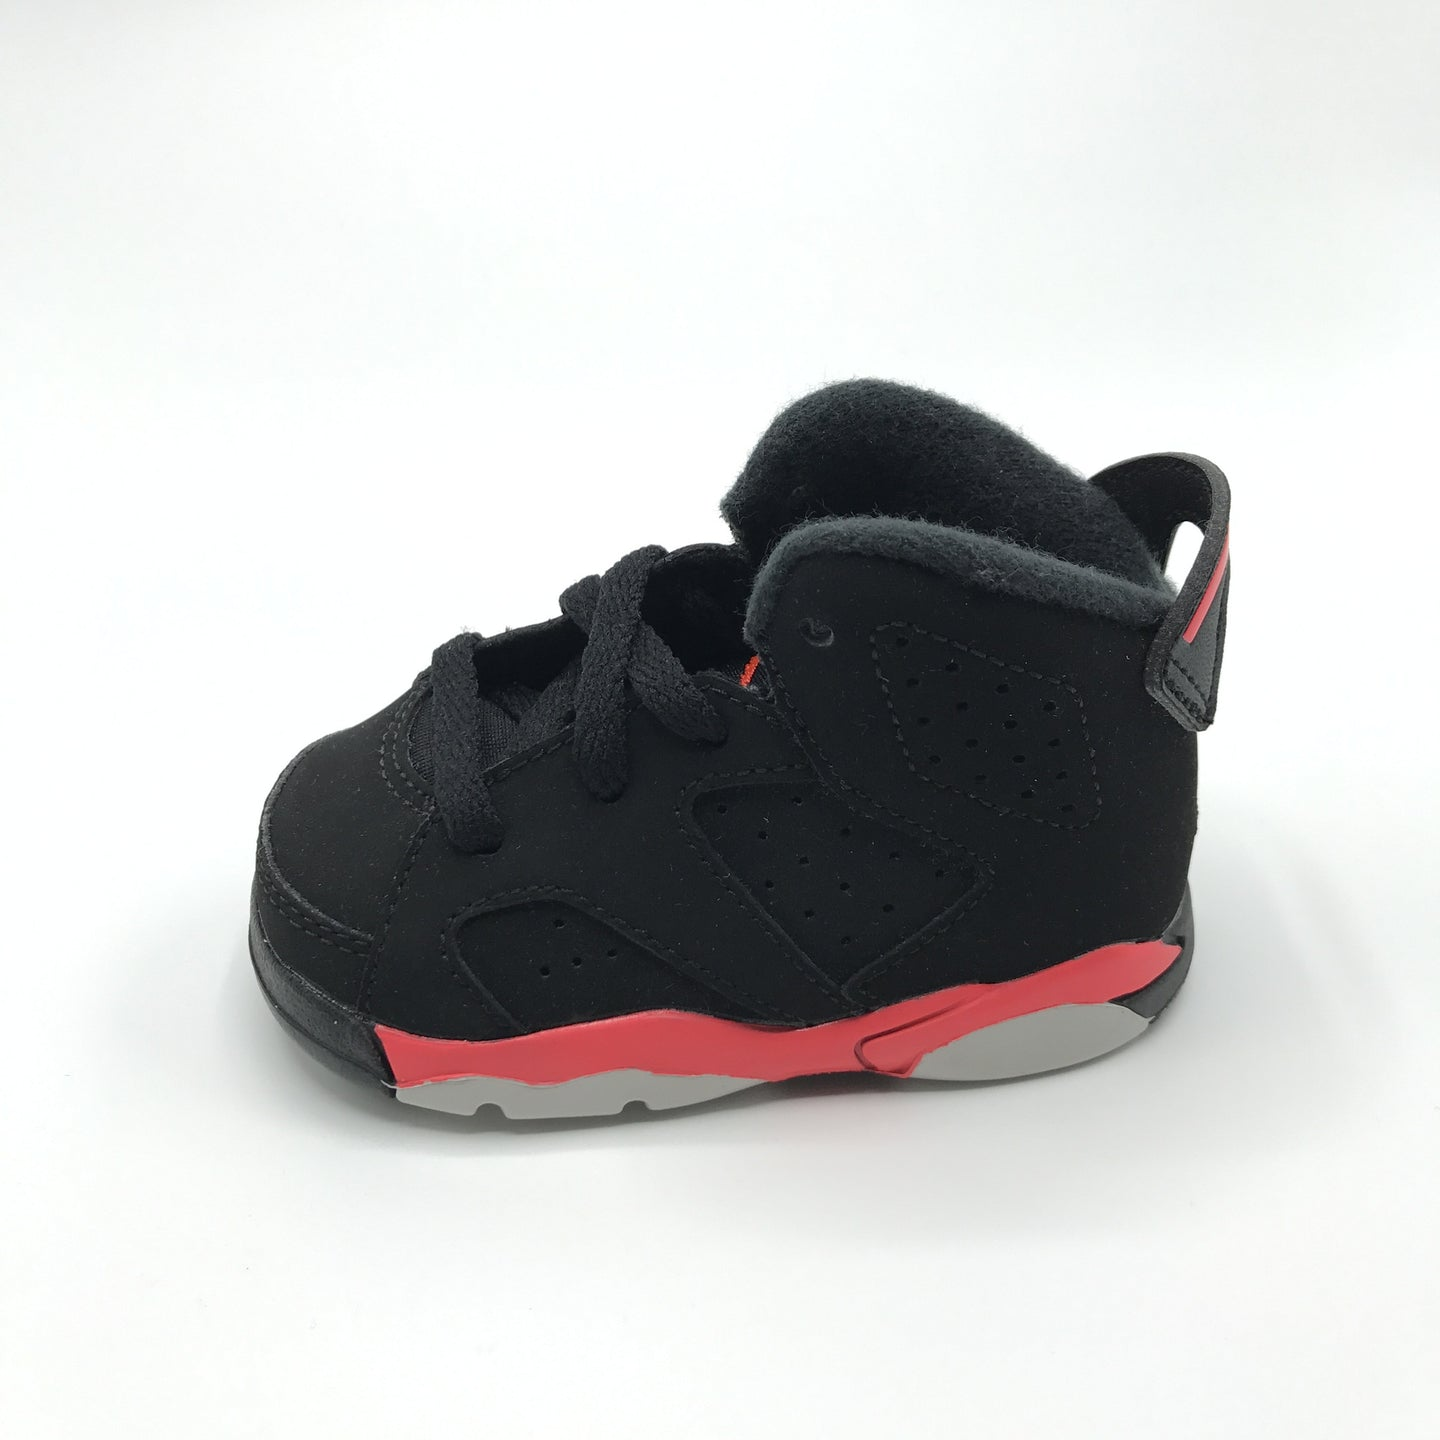 Air Jordan 6 BT - Infrared